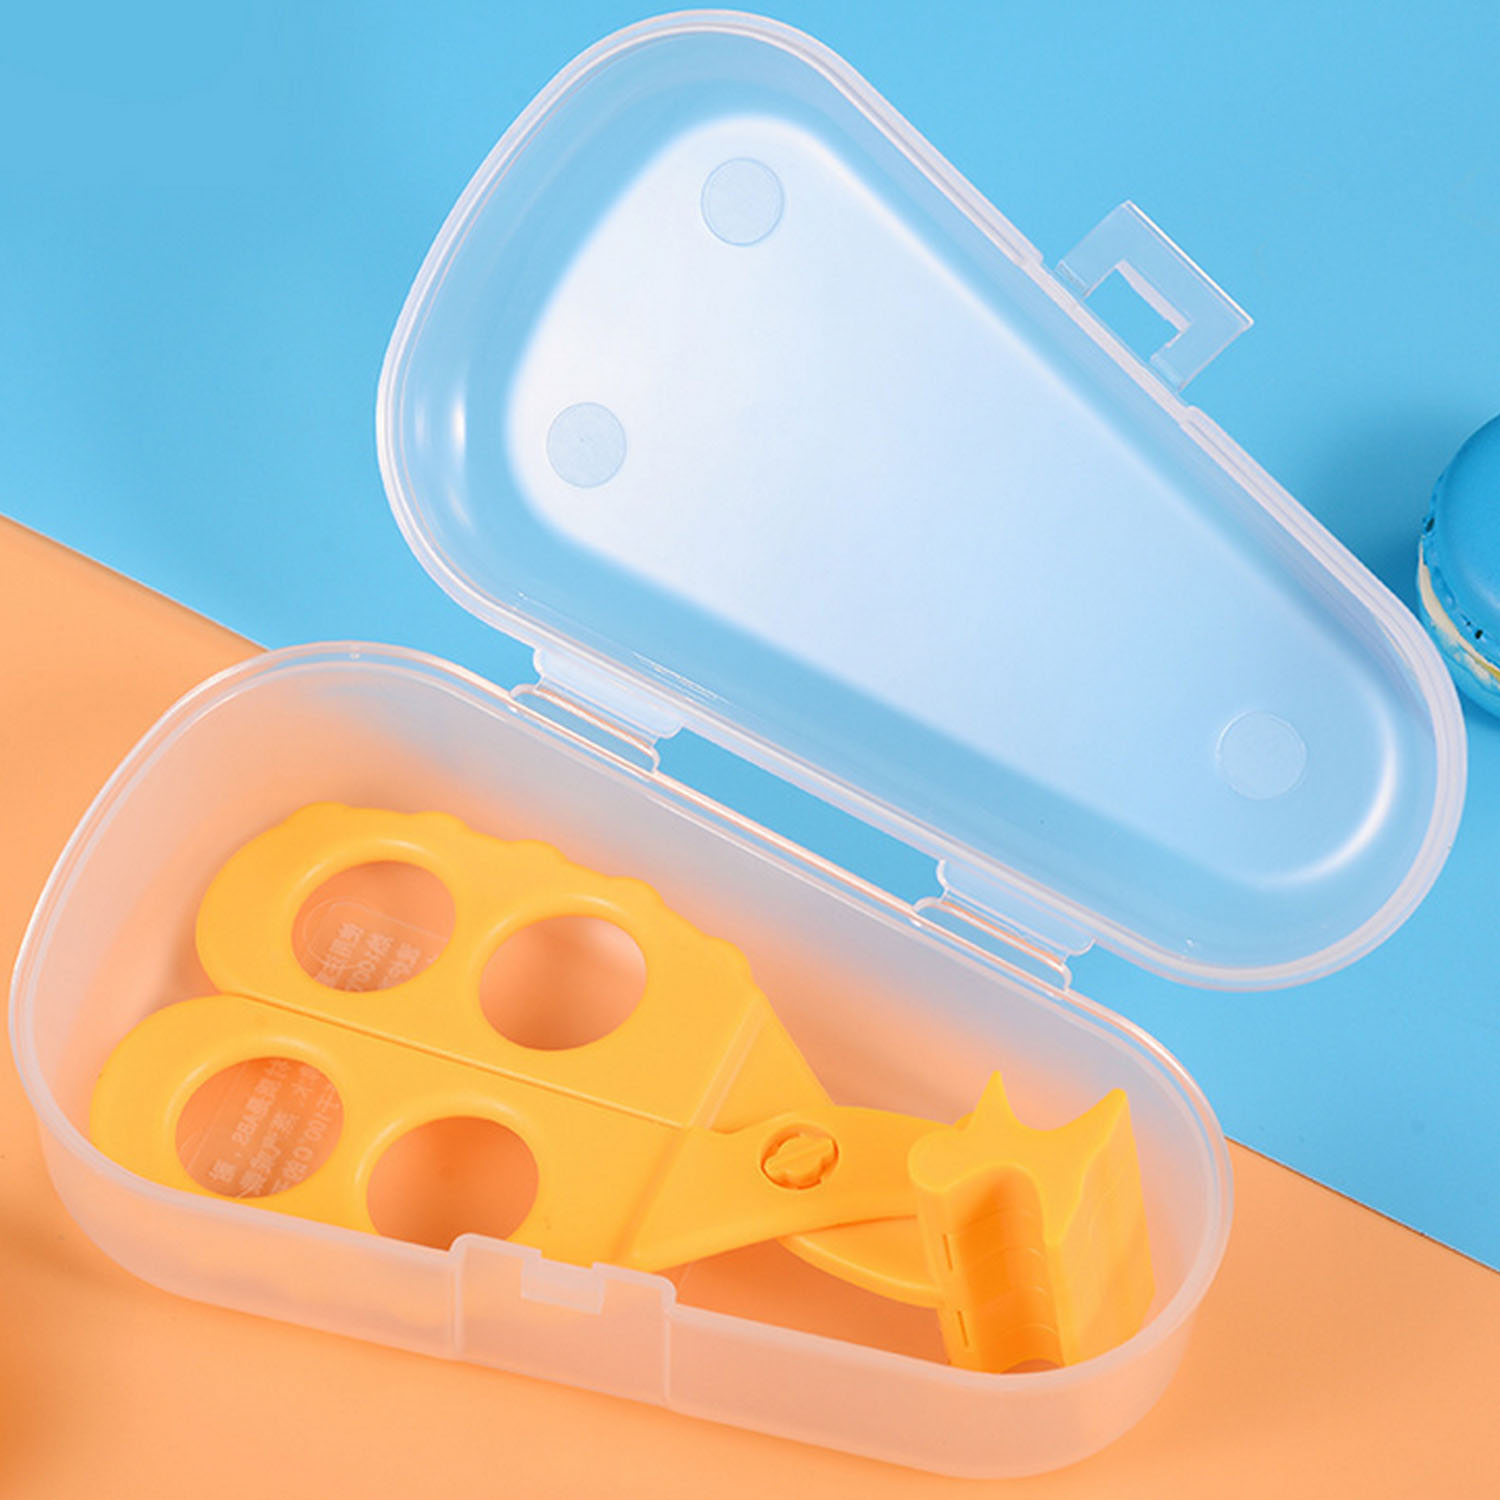 Professional Safe Portable Infant Feeding FoodS Crush Scissors Shears Cutter Masher With Storage Case Baby Care For Baby Feeding